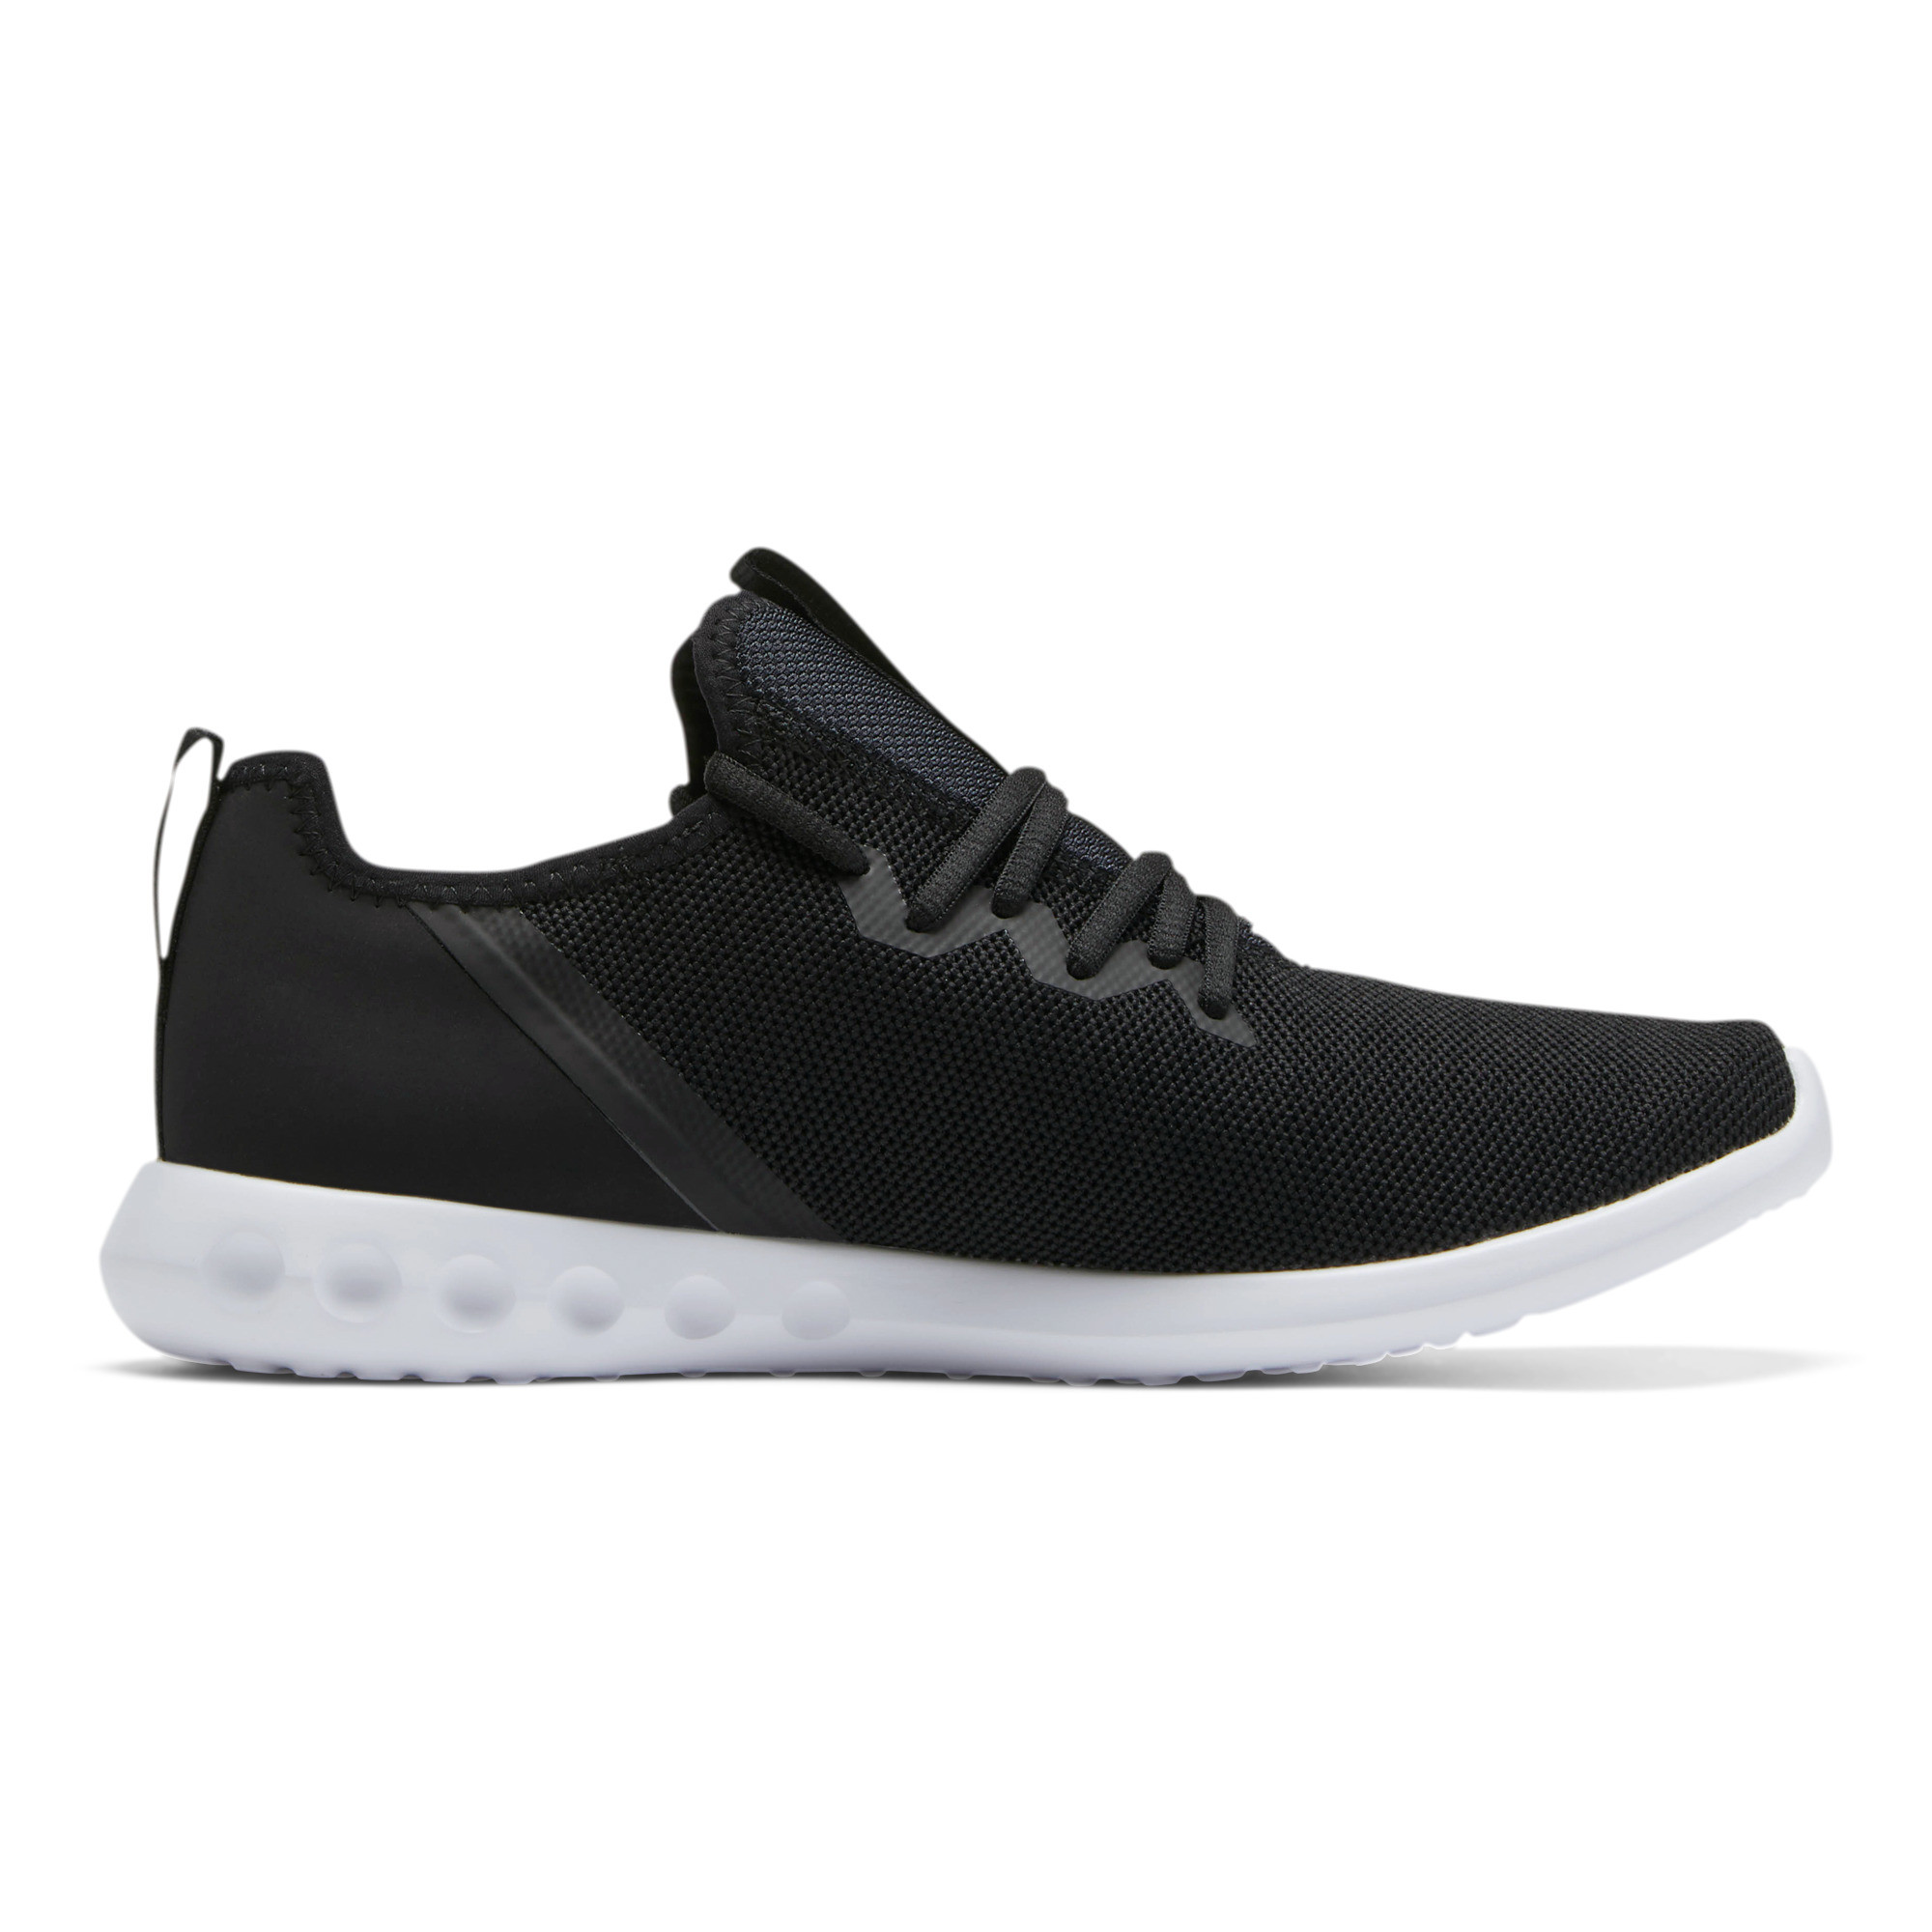 PUMA-Carson-2-X-Knit-Men-039-s-Running-Shoes-Men-Shoe-Running thumbnail 36